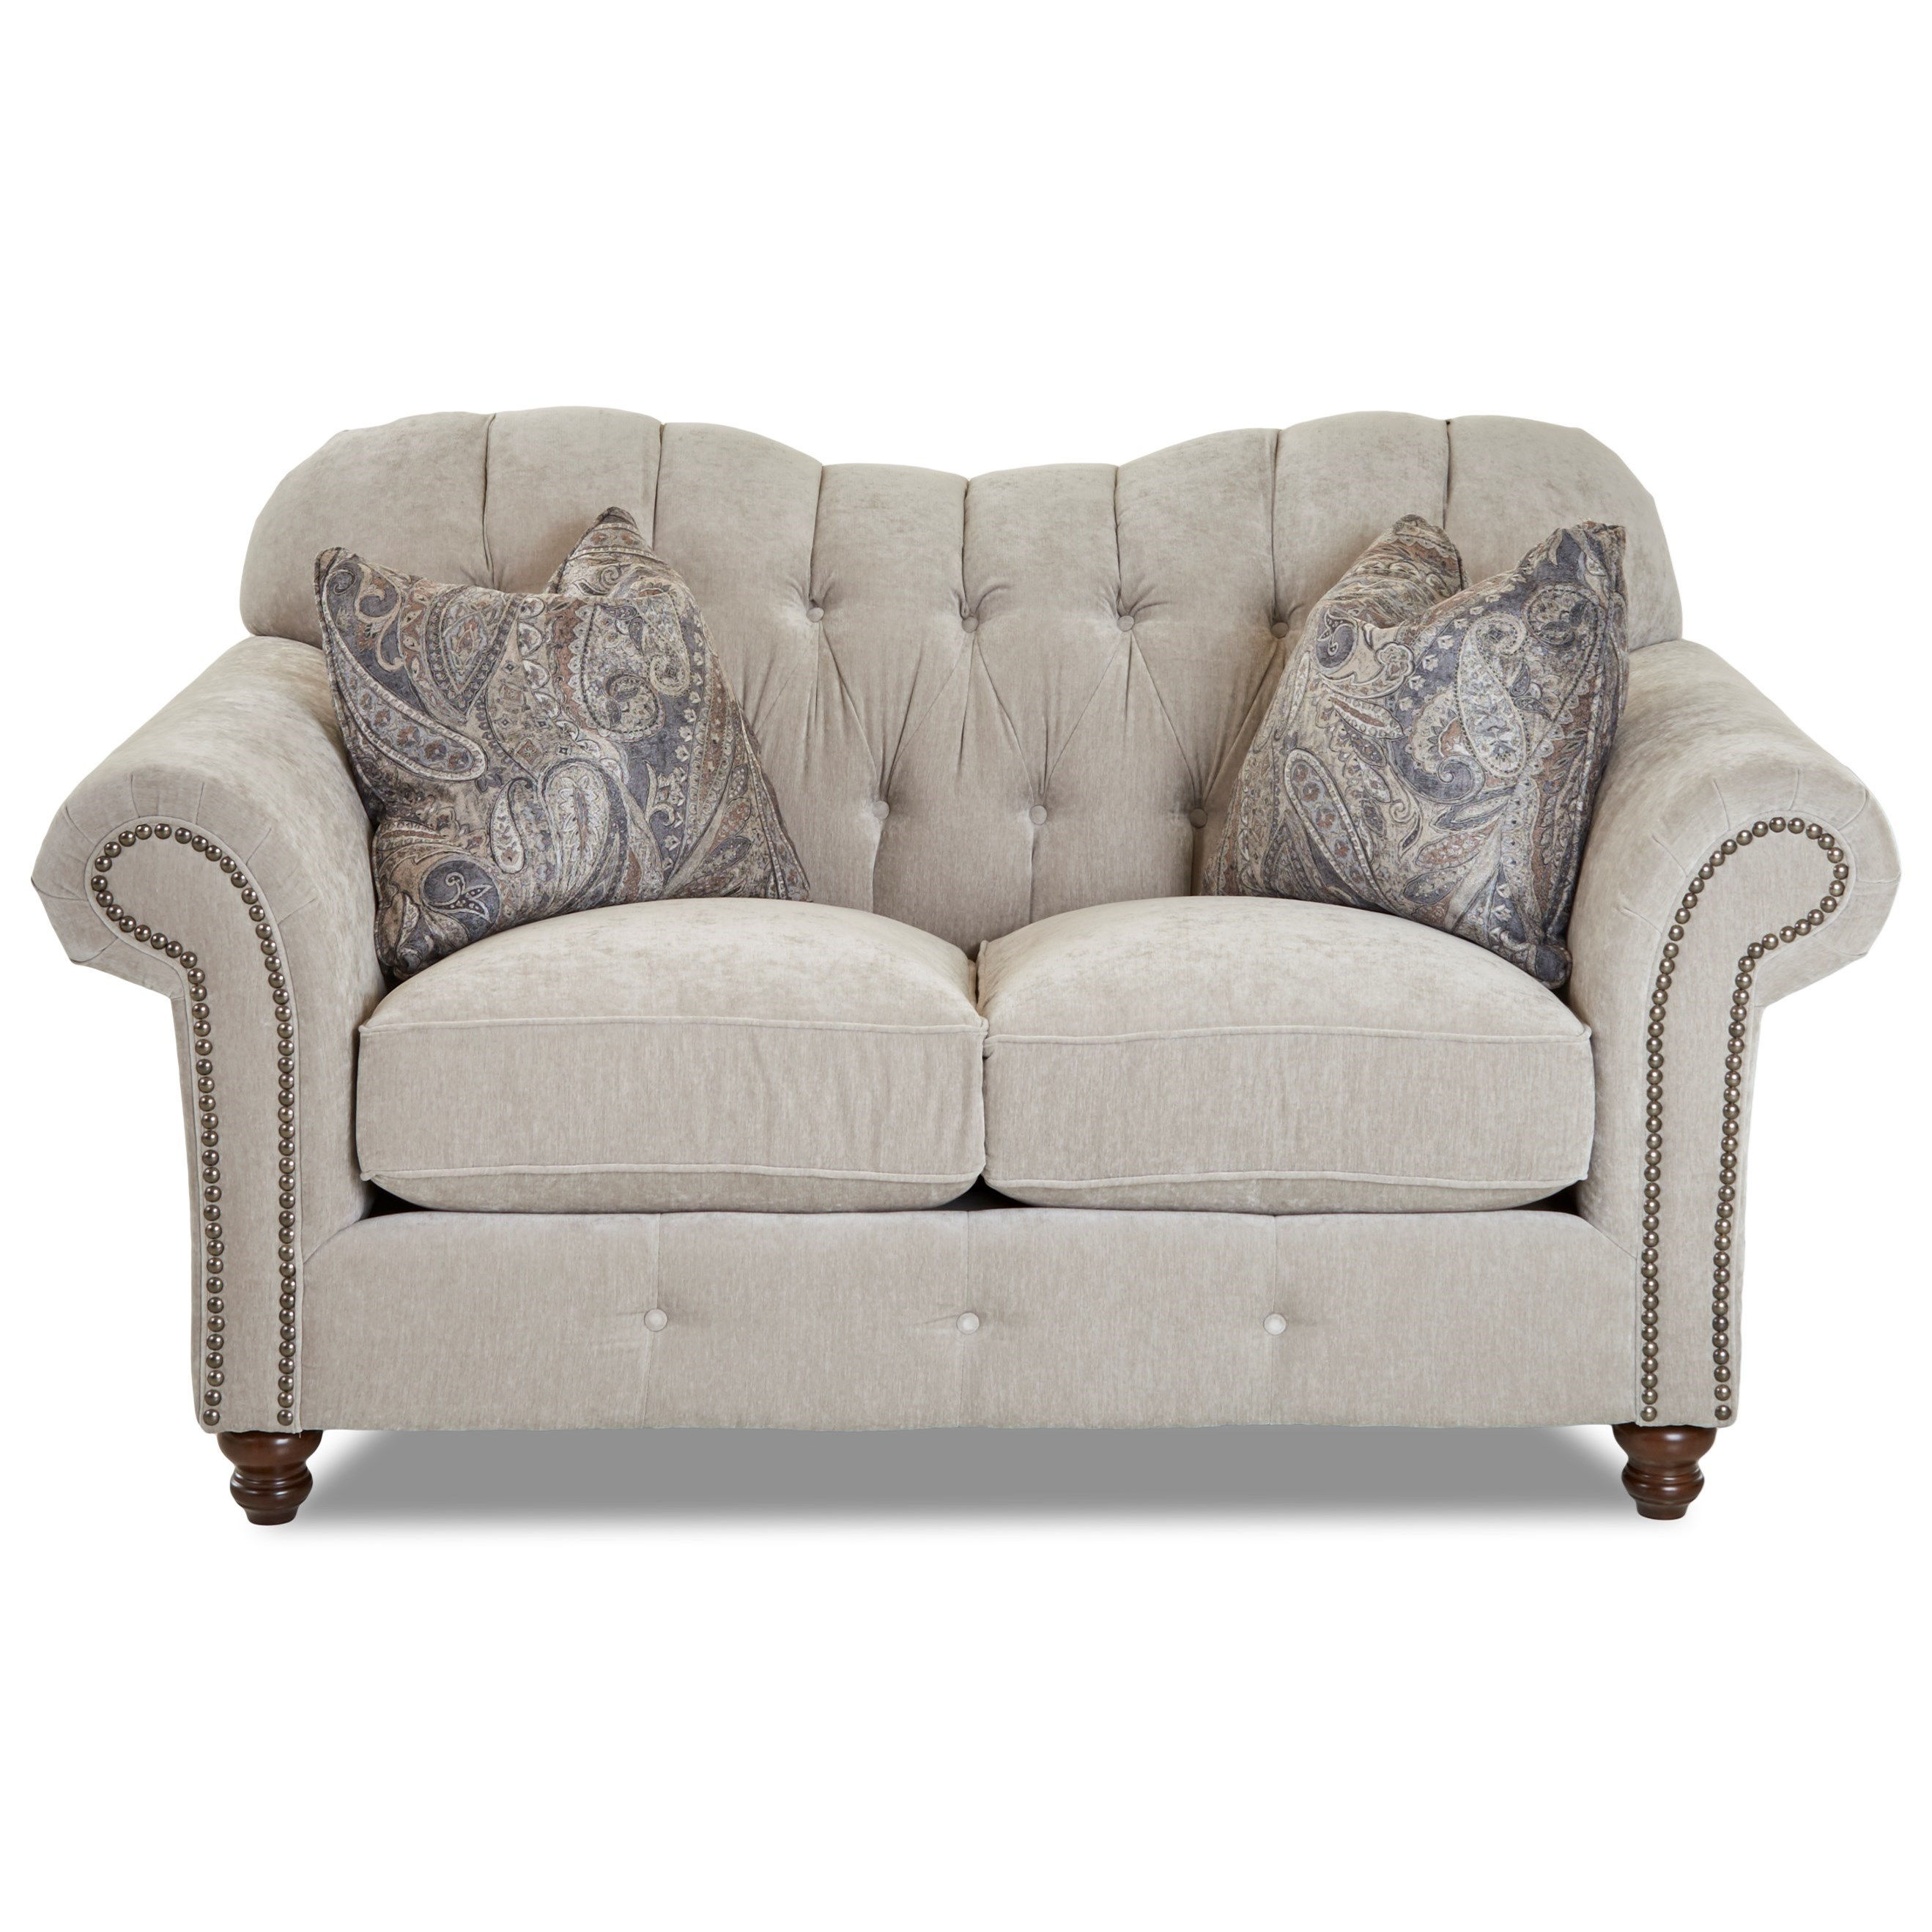 Shelby Loveseat w/ Nailheads by Klaussner at Johnny Janosik